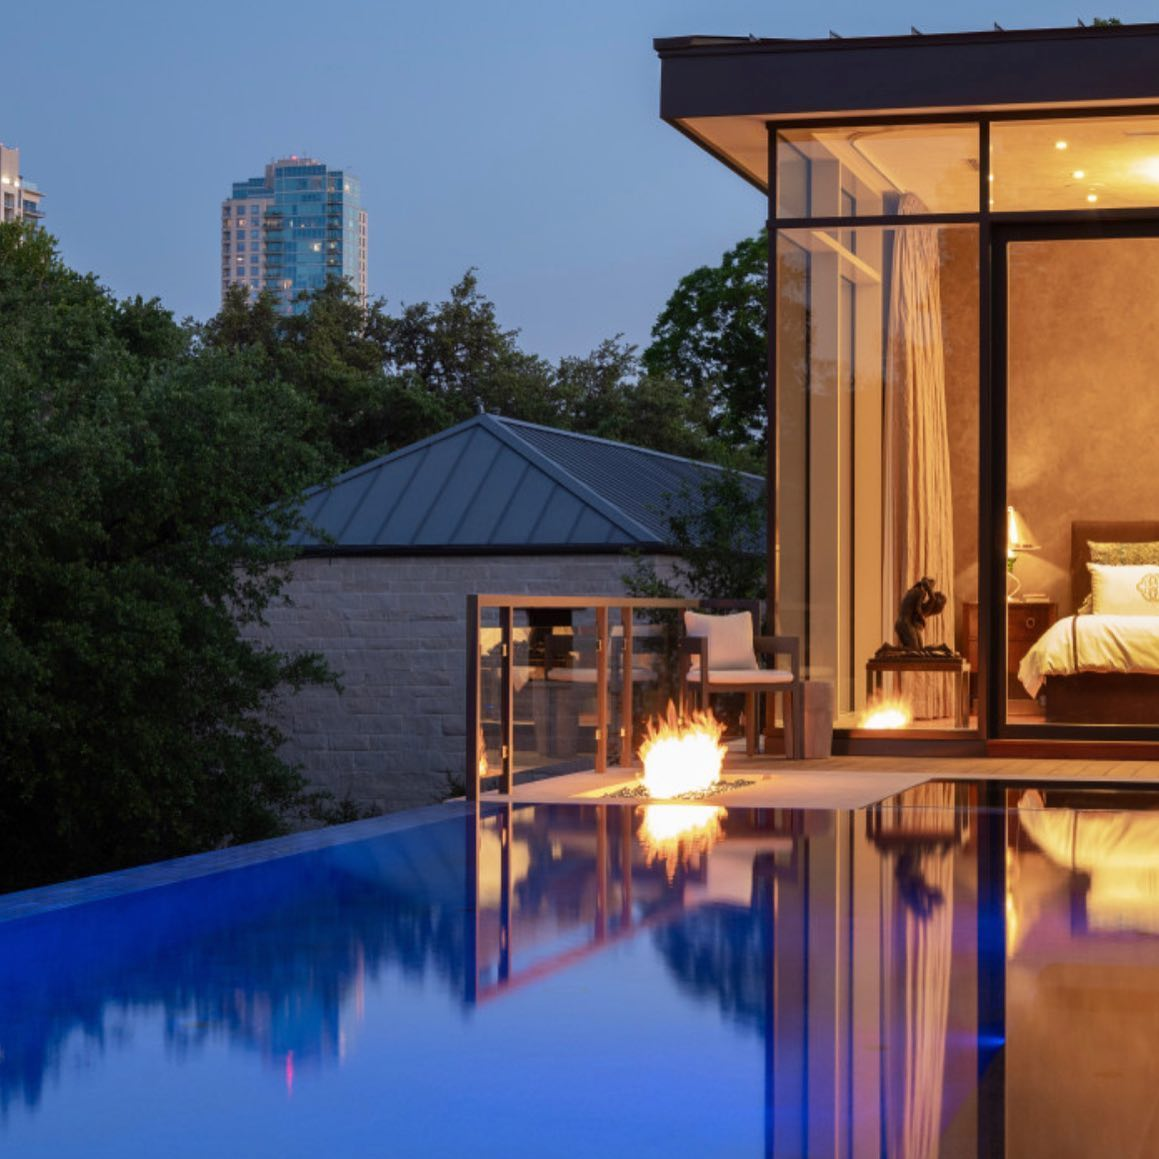 Evening view from our Old West Austin pool! Architecture by @laruearchitects pool by @austinwaterdesigns interiors by @lovecounty and most importantly thank you to our special homeowners that allowed us to build them such a special place.